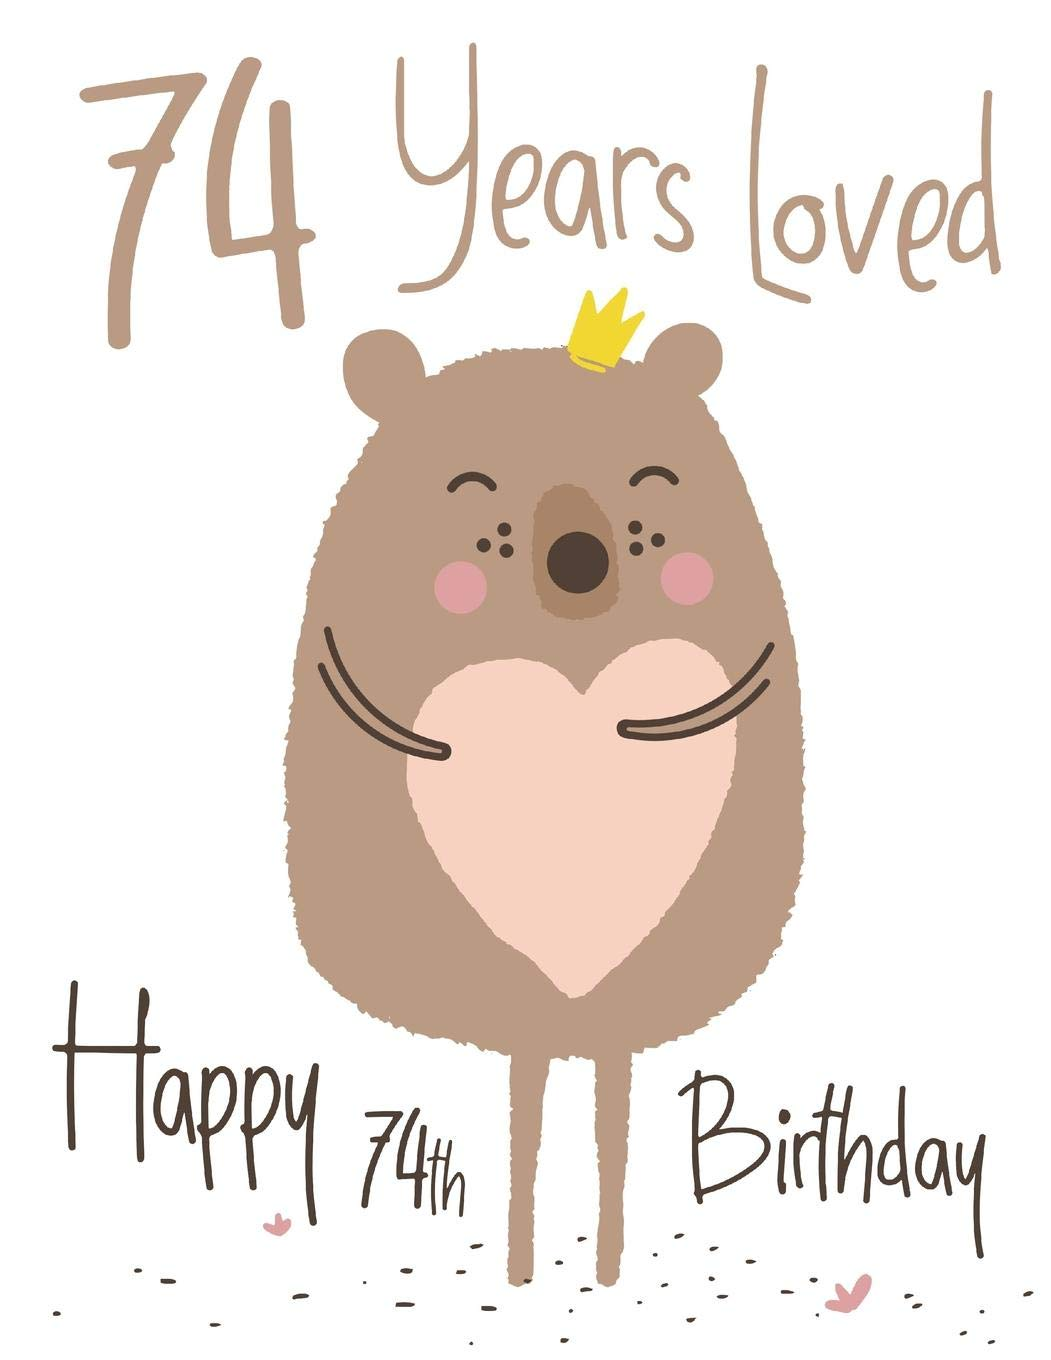 Happy 74th Birthday: 74 Years Loved, Show Your Love and Say.